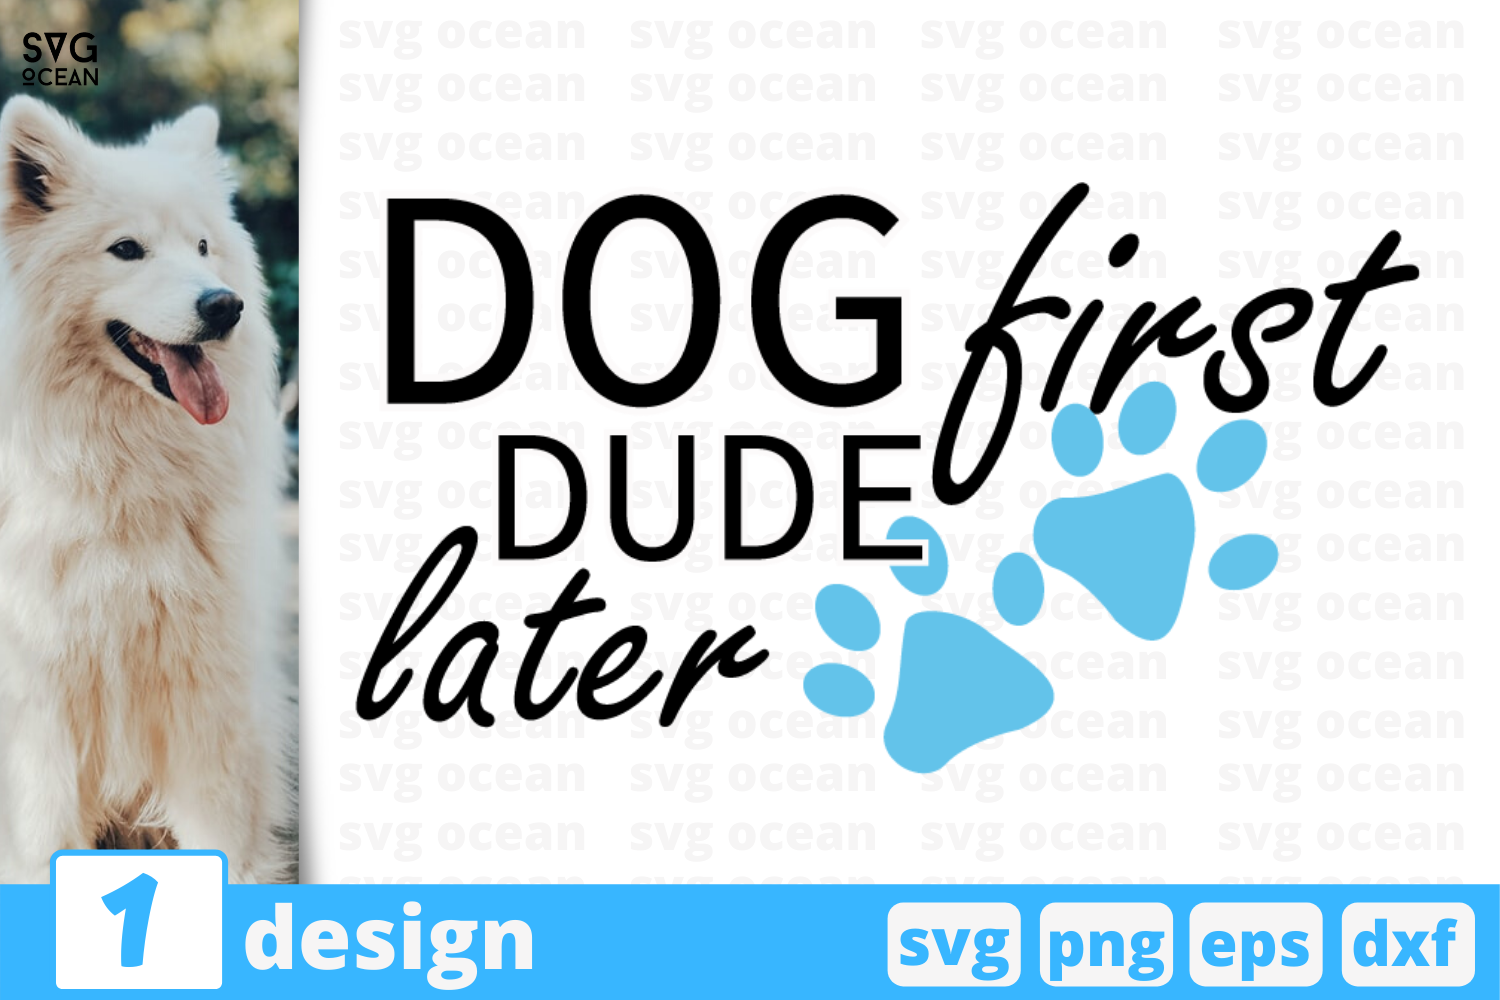 Download Free Dog First Dude Later Graphic By Svgocean Creative Fabrica for Cricut Explore, Silhouette and other cutting machines.